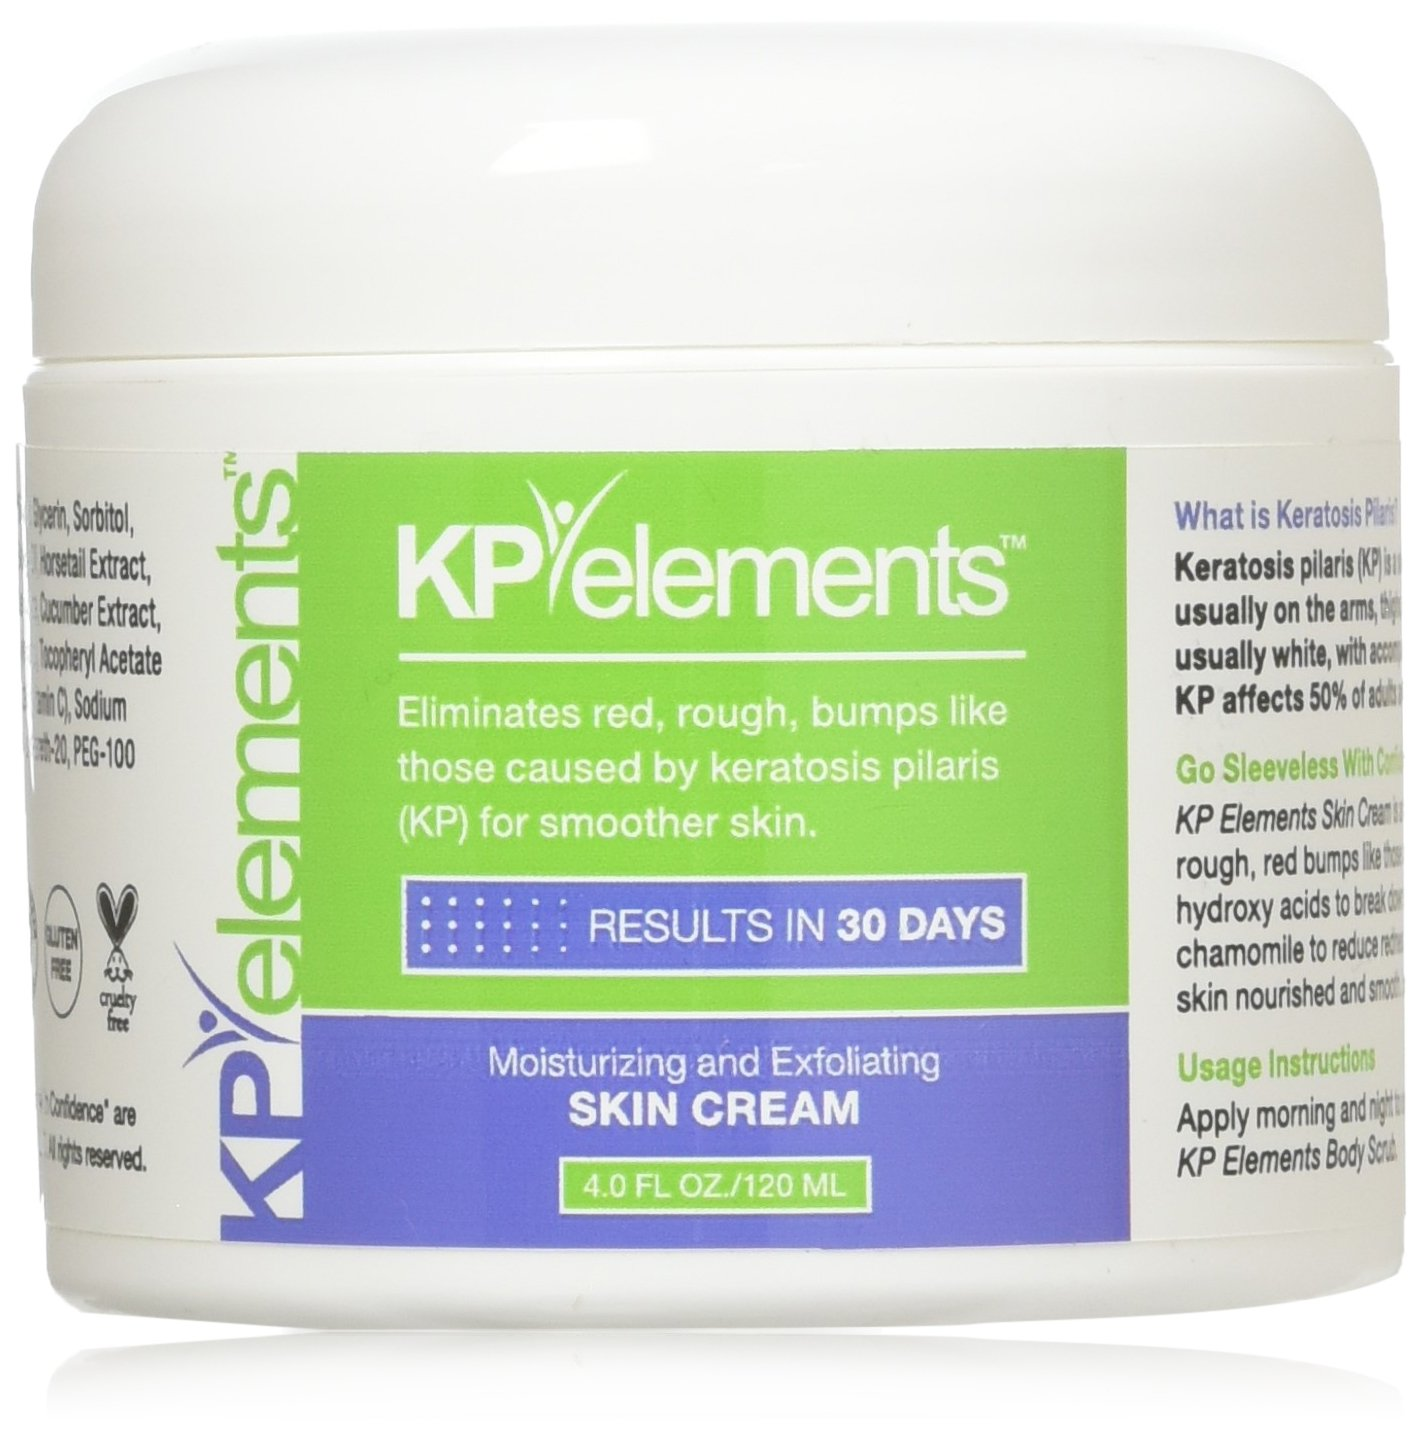 KP Elements Keratosis Pilaris Treatment Cream - Keratosis Pilaris Cream for Arms and Thighs - Clear up Red Bumps Today by Combining Our KP Cream and Body Scrub. 100% Satisfaction GUARANTEED! (1) Elements Brands kpe1